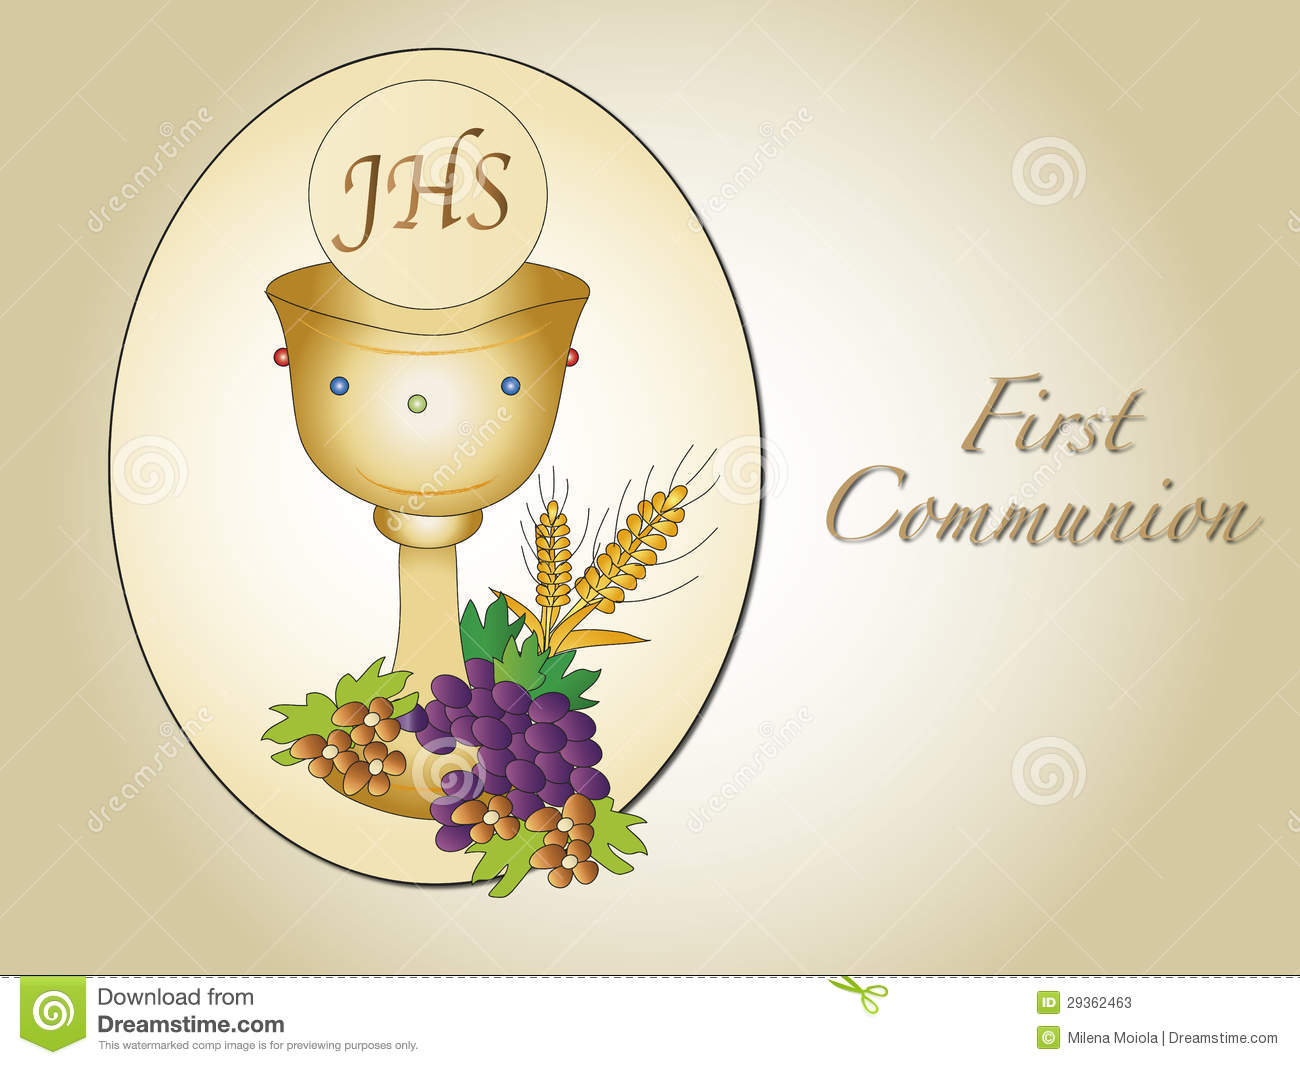 first communion stock photos image 29362463 first communion clip art free download first communion clip art free download